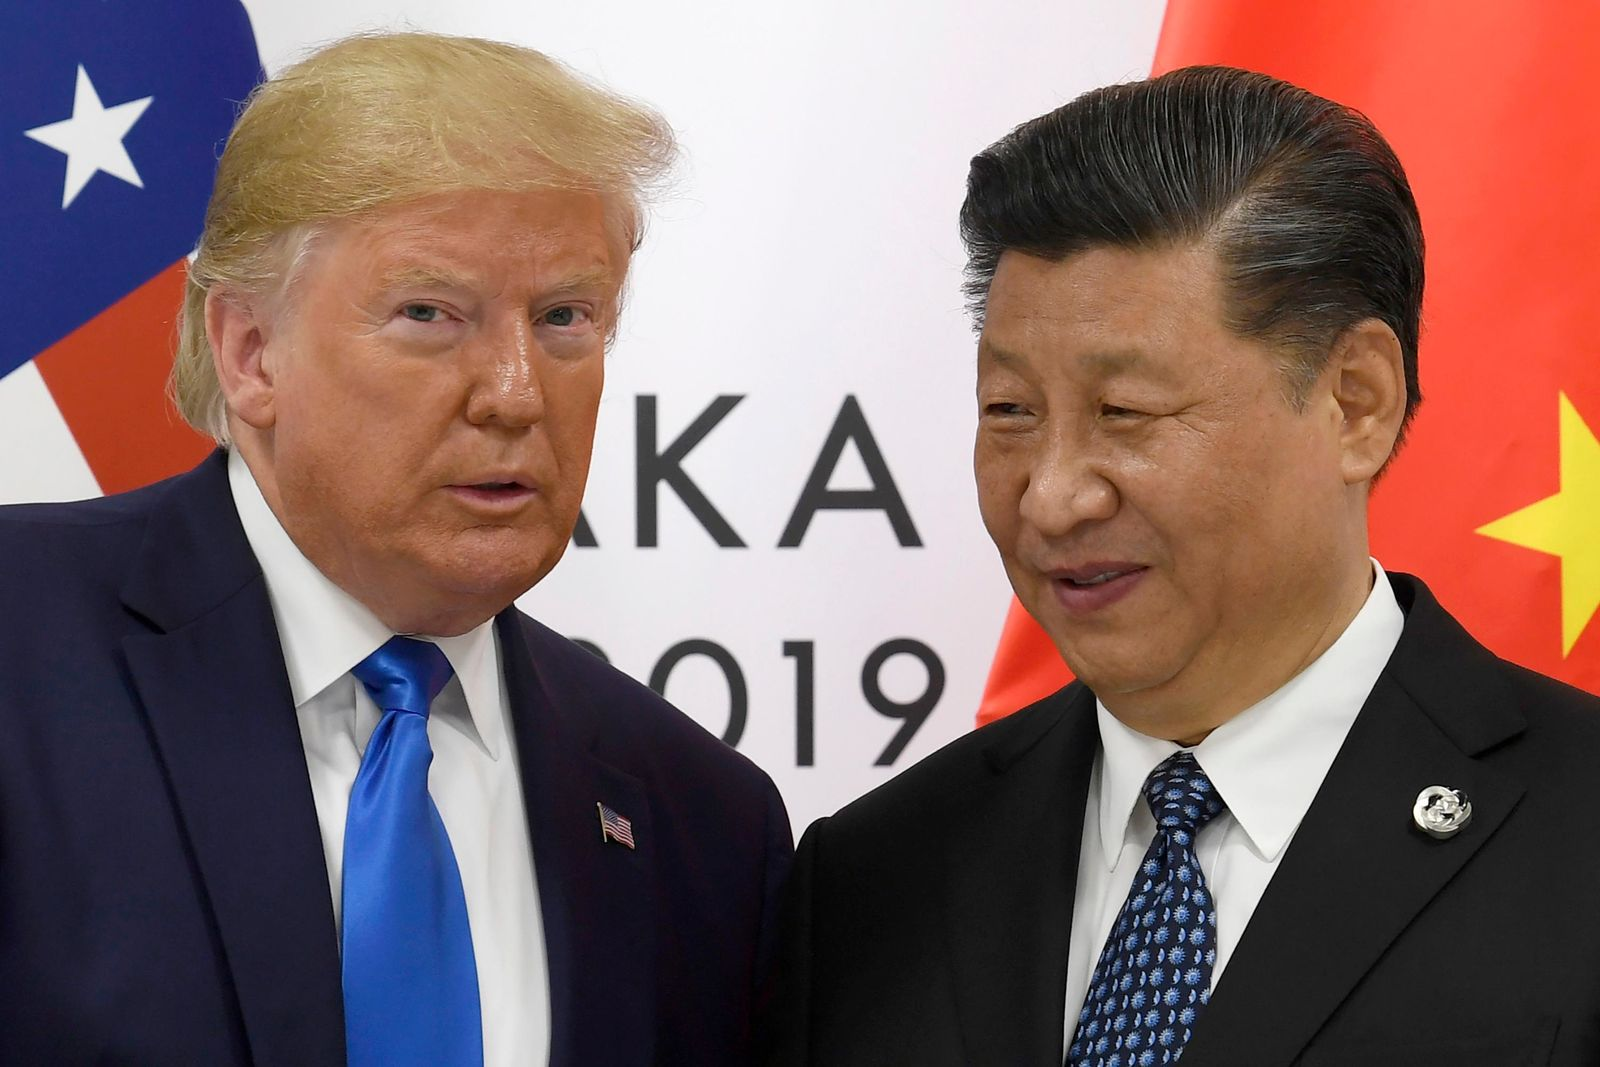 "FILE - In this June 29, 2019, file photo, U.S. President Donald Trump poses for a photo with Chinese President Xi Jinping during a meeting on the sidelines of the G-20 summit in Osaka, western Japan. Chinese Commerce Ministry spokesman Gao Feng said Beijing is working to resolve conflicts with Washington over trade, dismissing speculation the talks might be in trouble as unreliable ""rumors."" Trump had said he hoped to sign a preliminary agreement with Xi by this month. (AP Photo/Susan Walsh, File)"